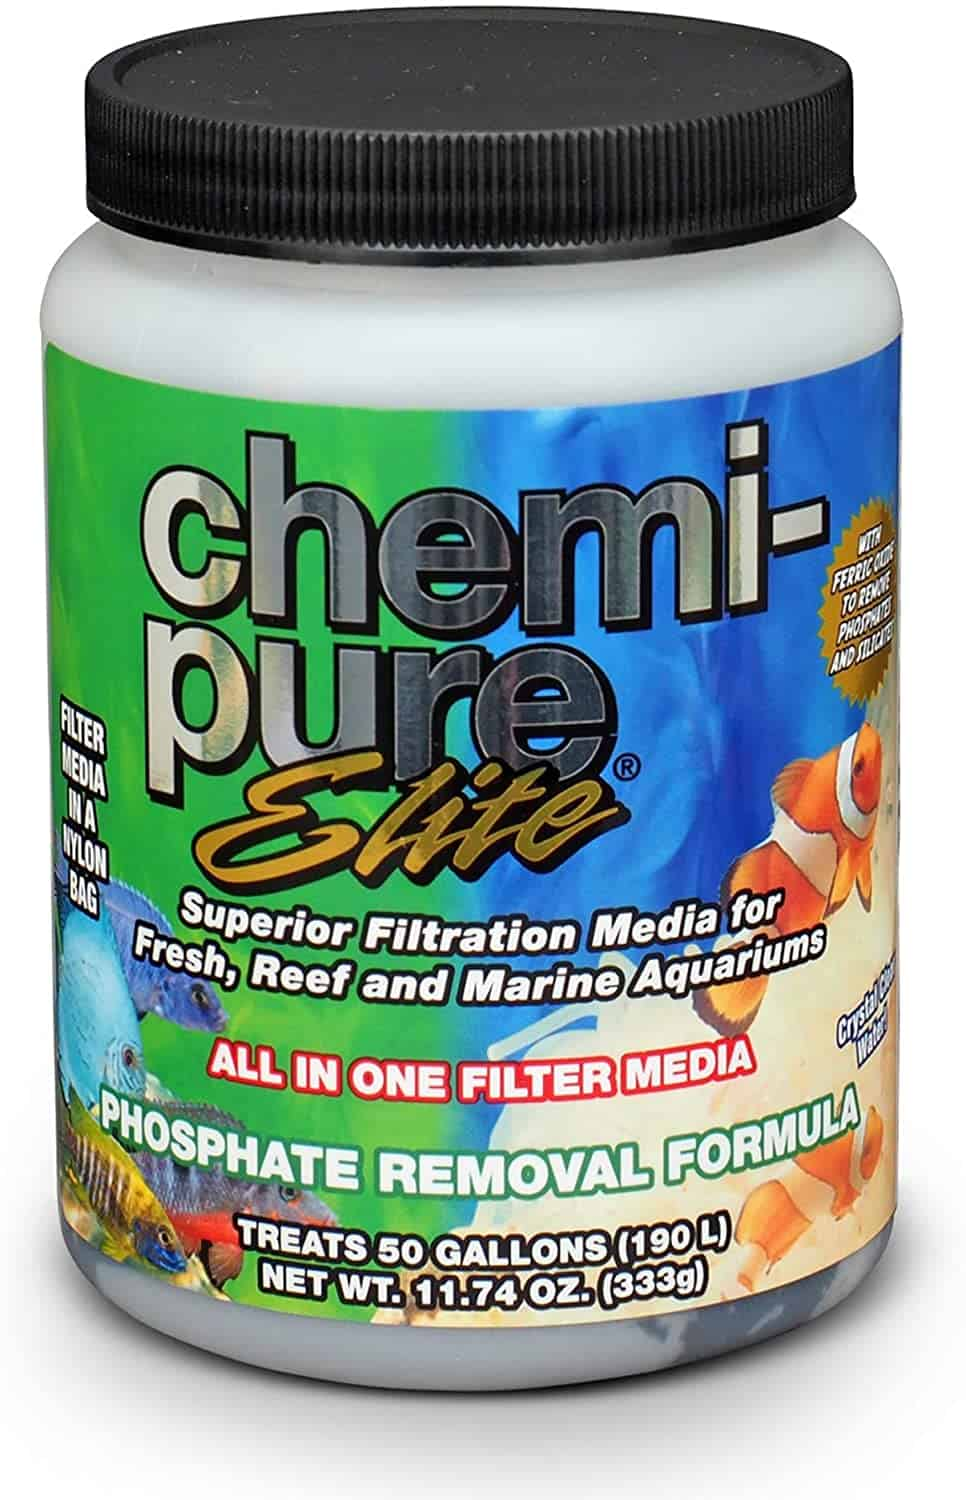 Chemi Pure Elite Review